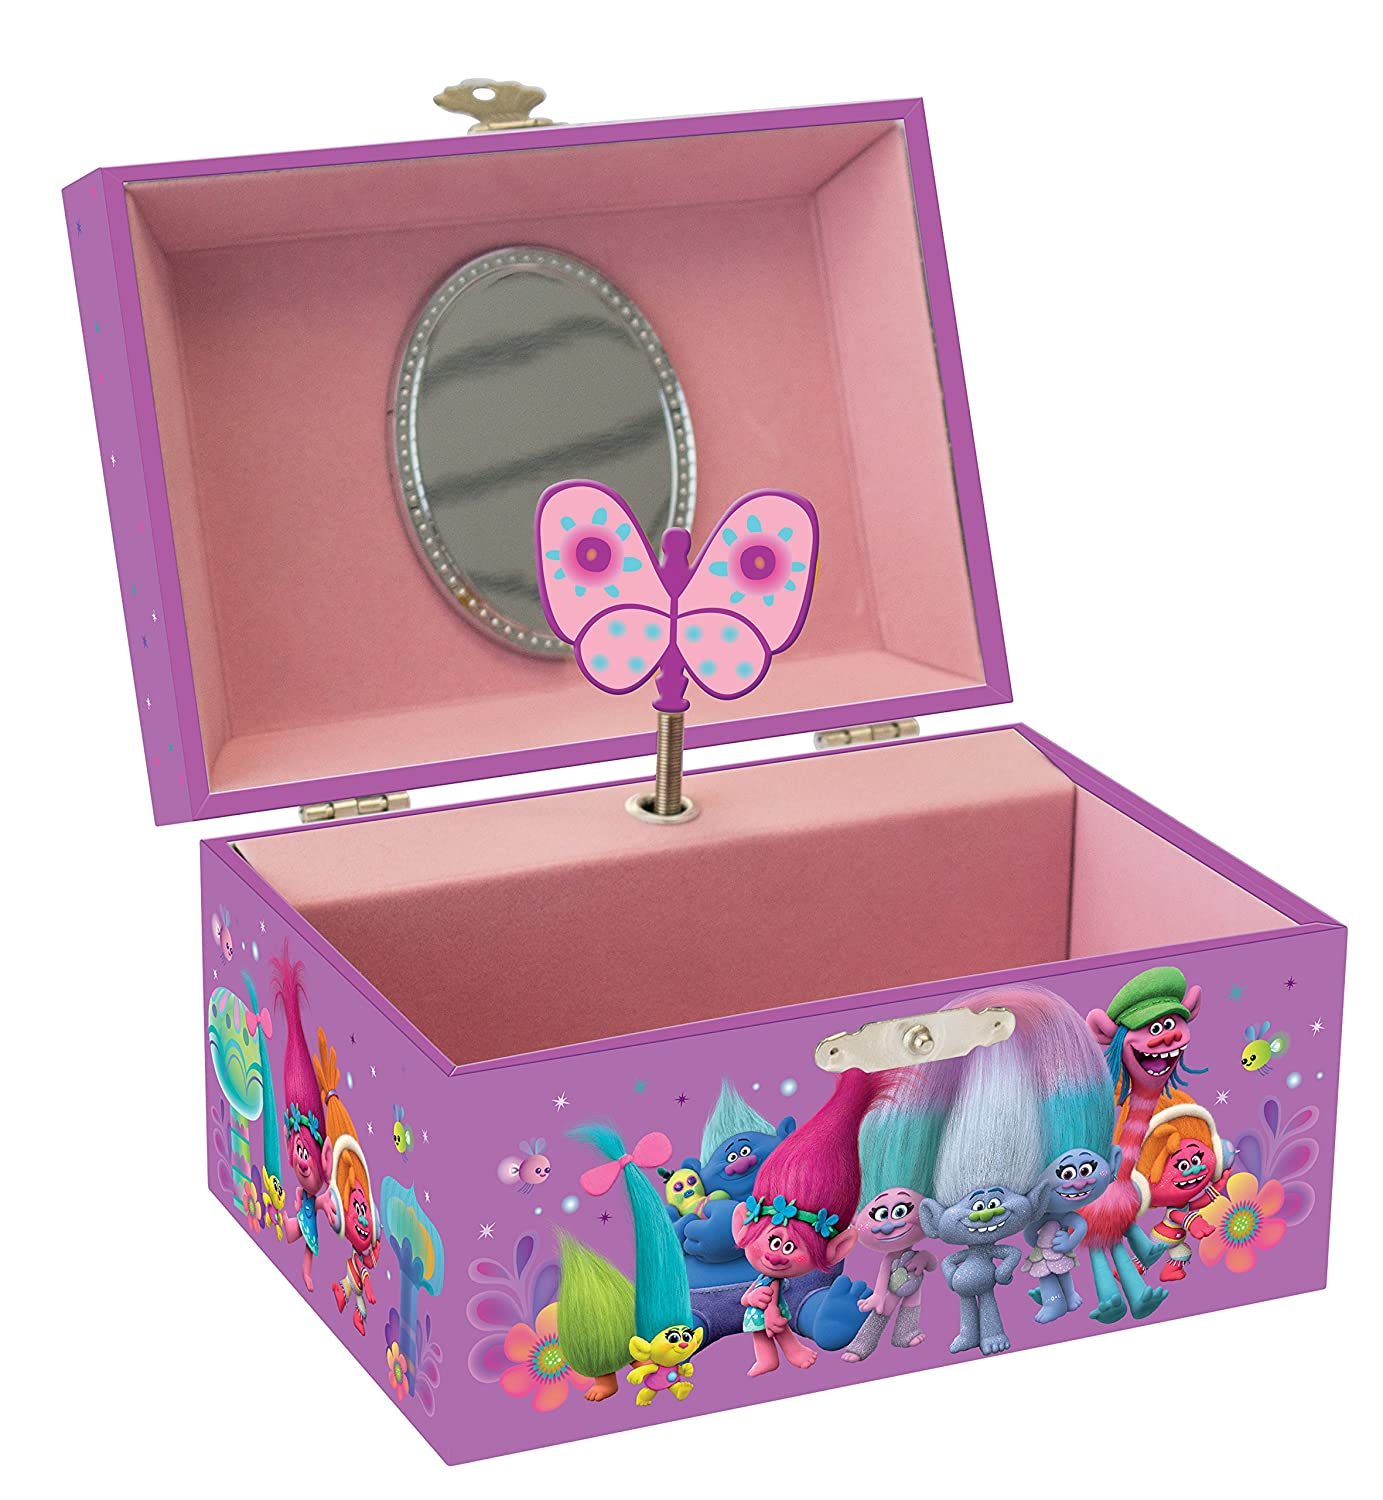 Joy Toy 67685 Trolls Jewellery Box with Music in Gift Wrap Joy Toy AG